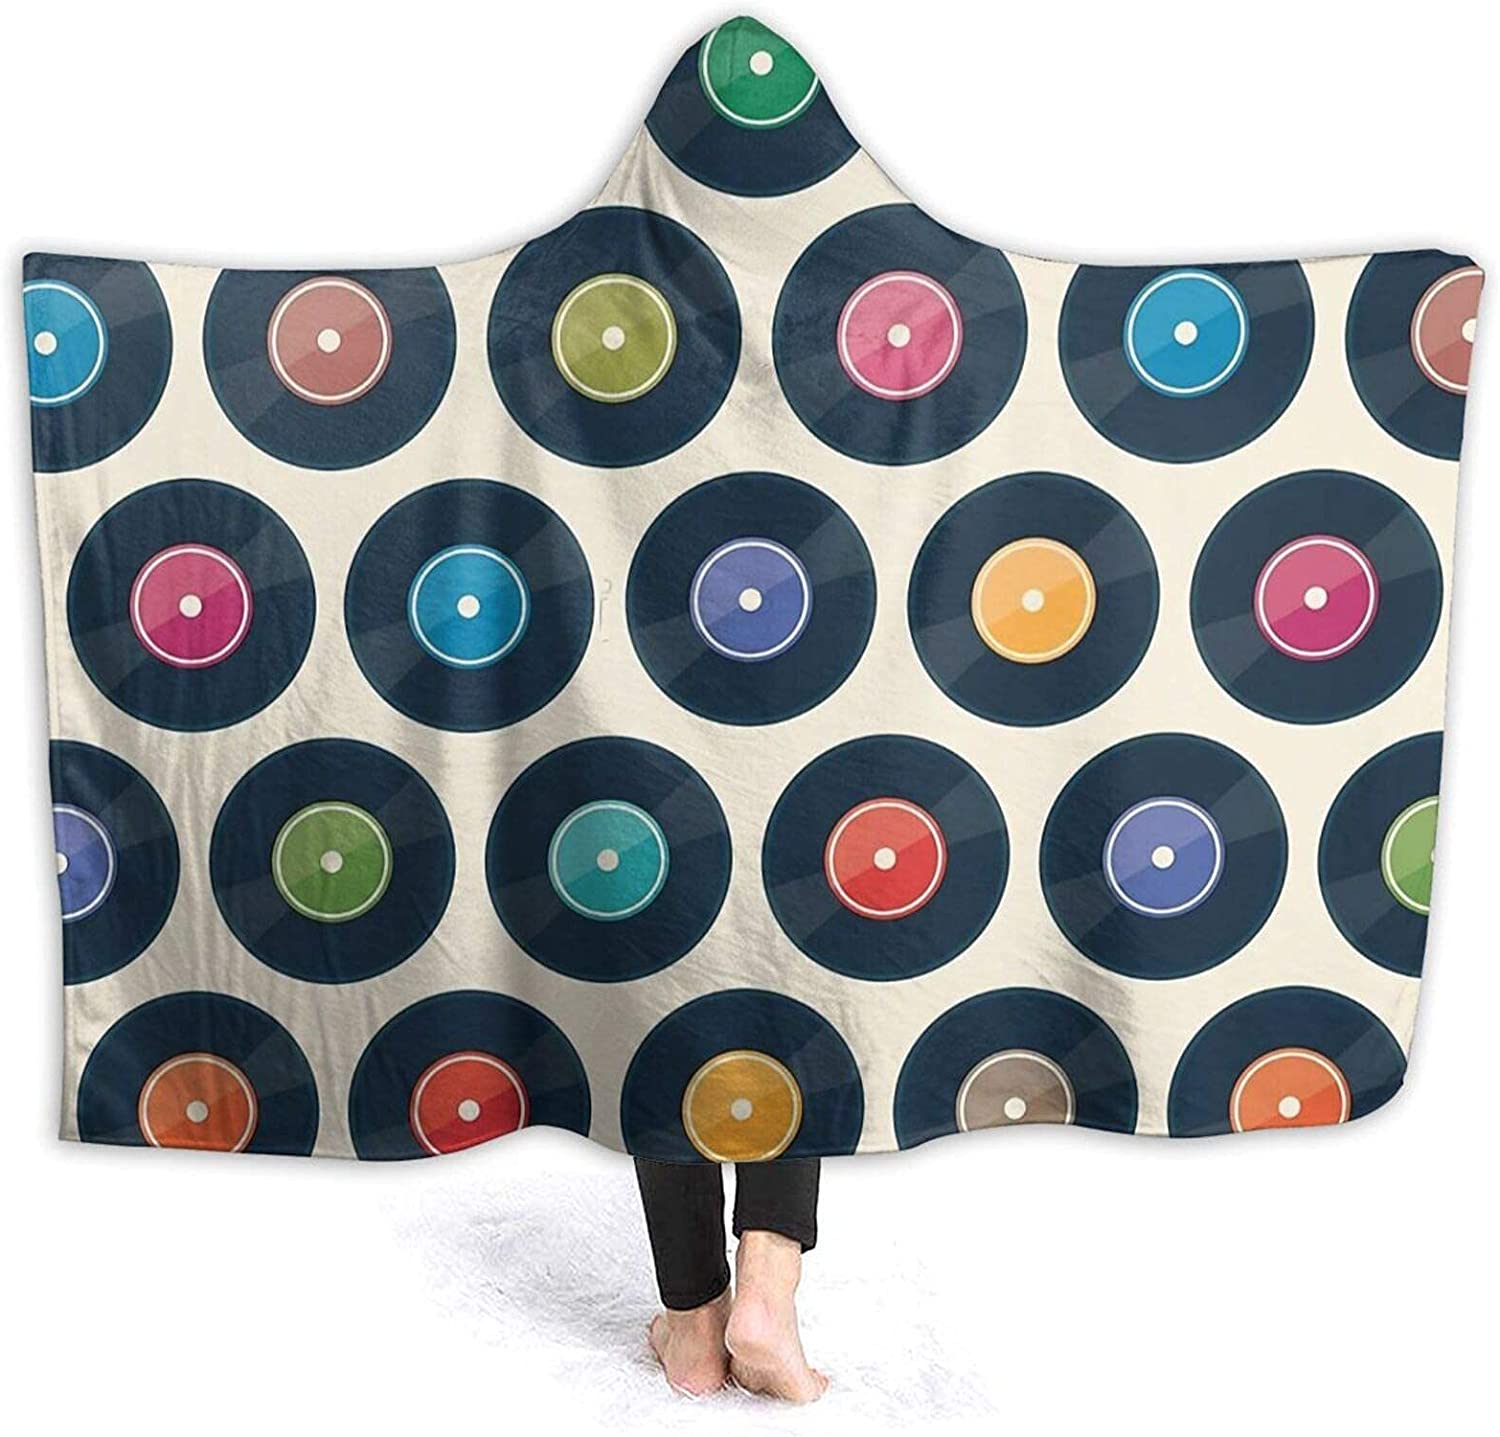 Low price Hooded Blanket 3D Vinyl Record Flee Sherpa Soft Super Collection Clearance SALE Limited time